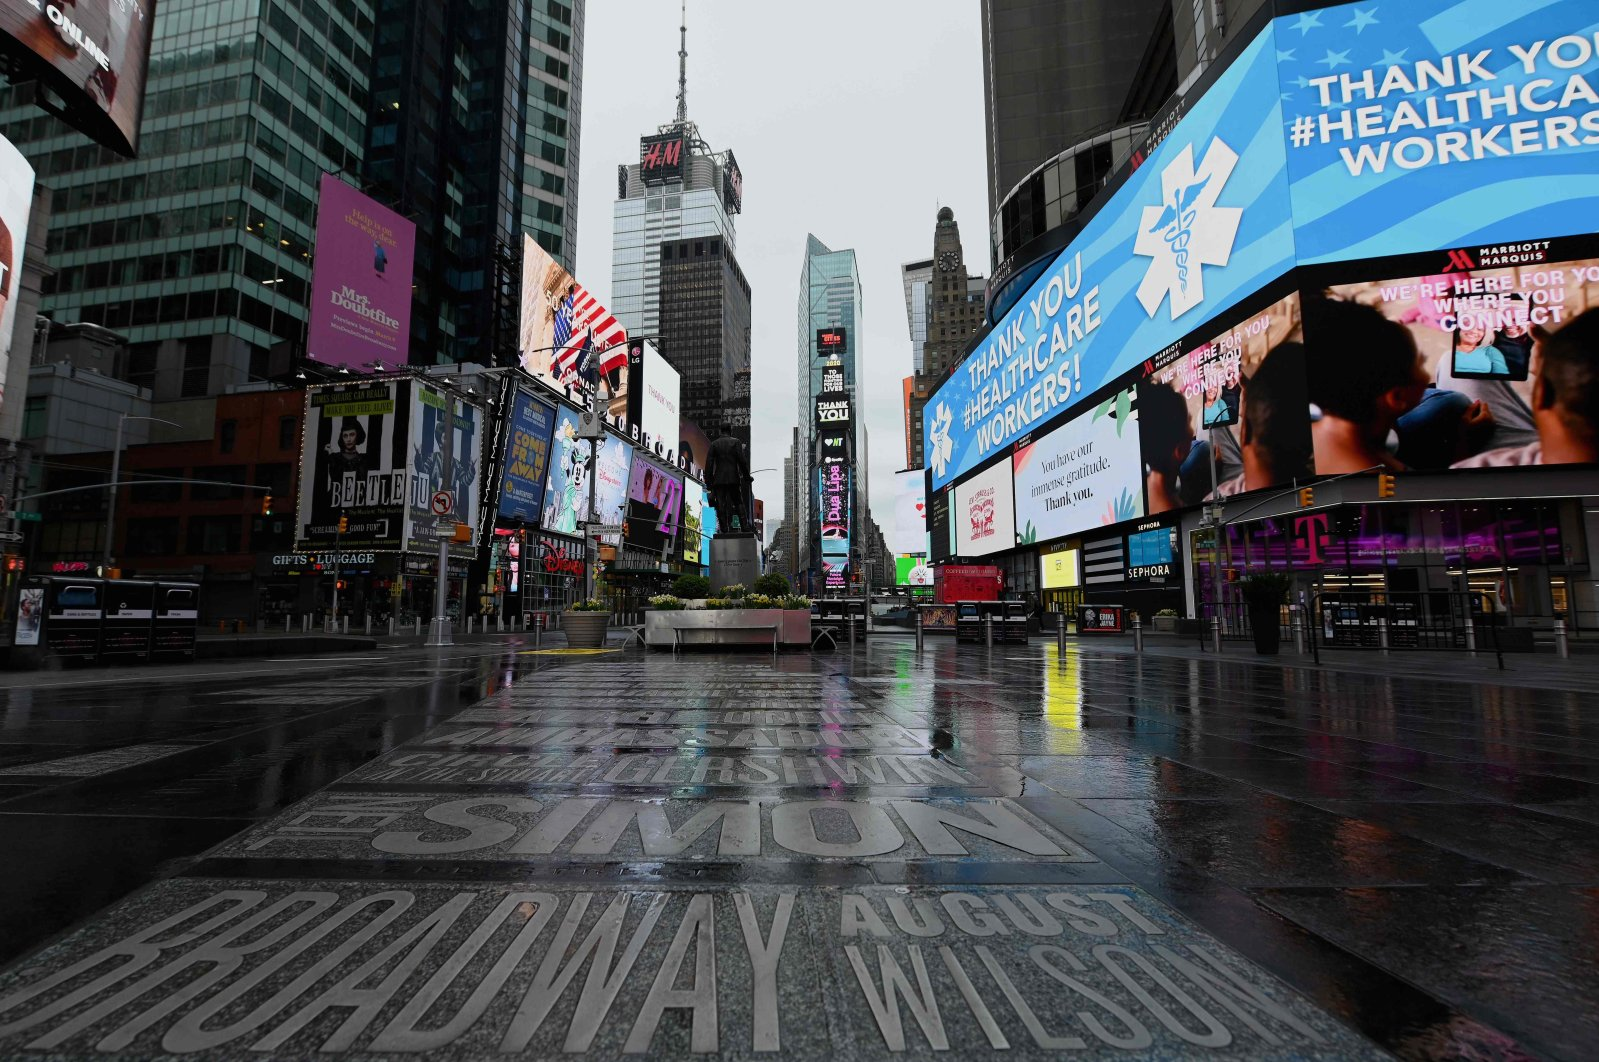 A view of a nearly empty Time Square on April 09, 2020 in New York City, as another 6.6 million US workers file for unemployment benefits for the week ending April 4, 2020. (AFP Photo)